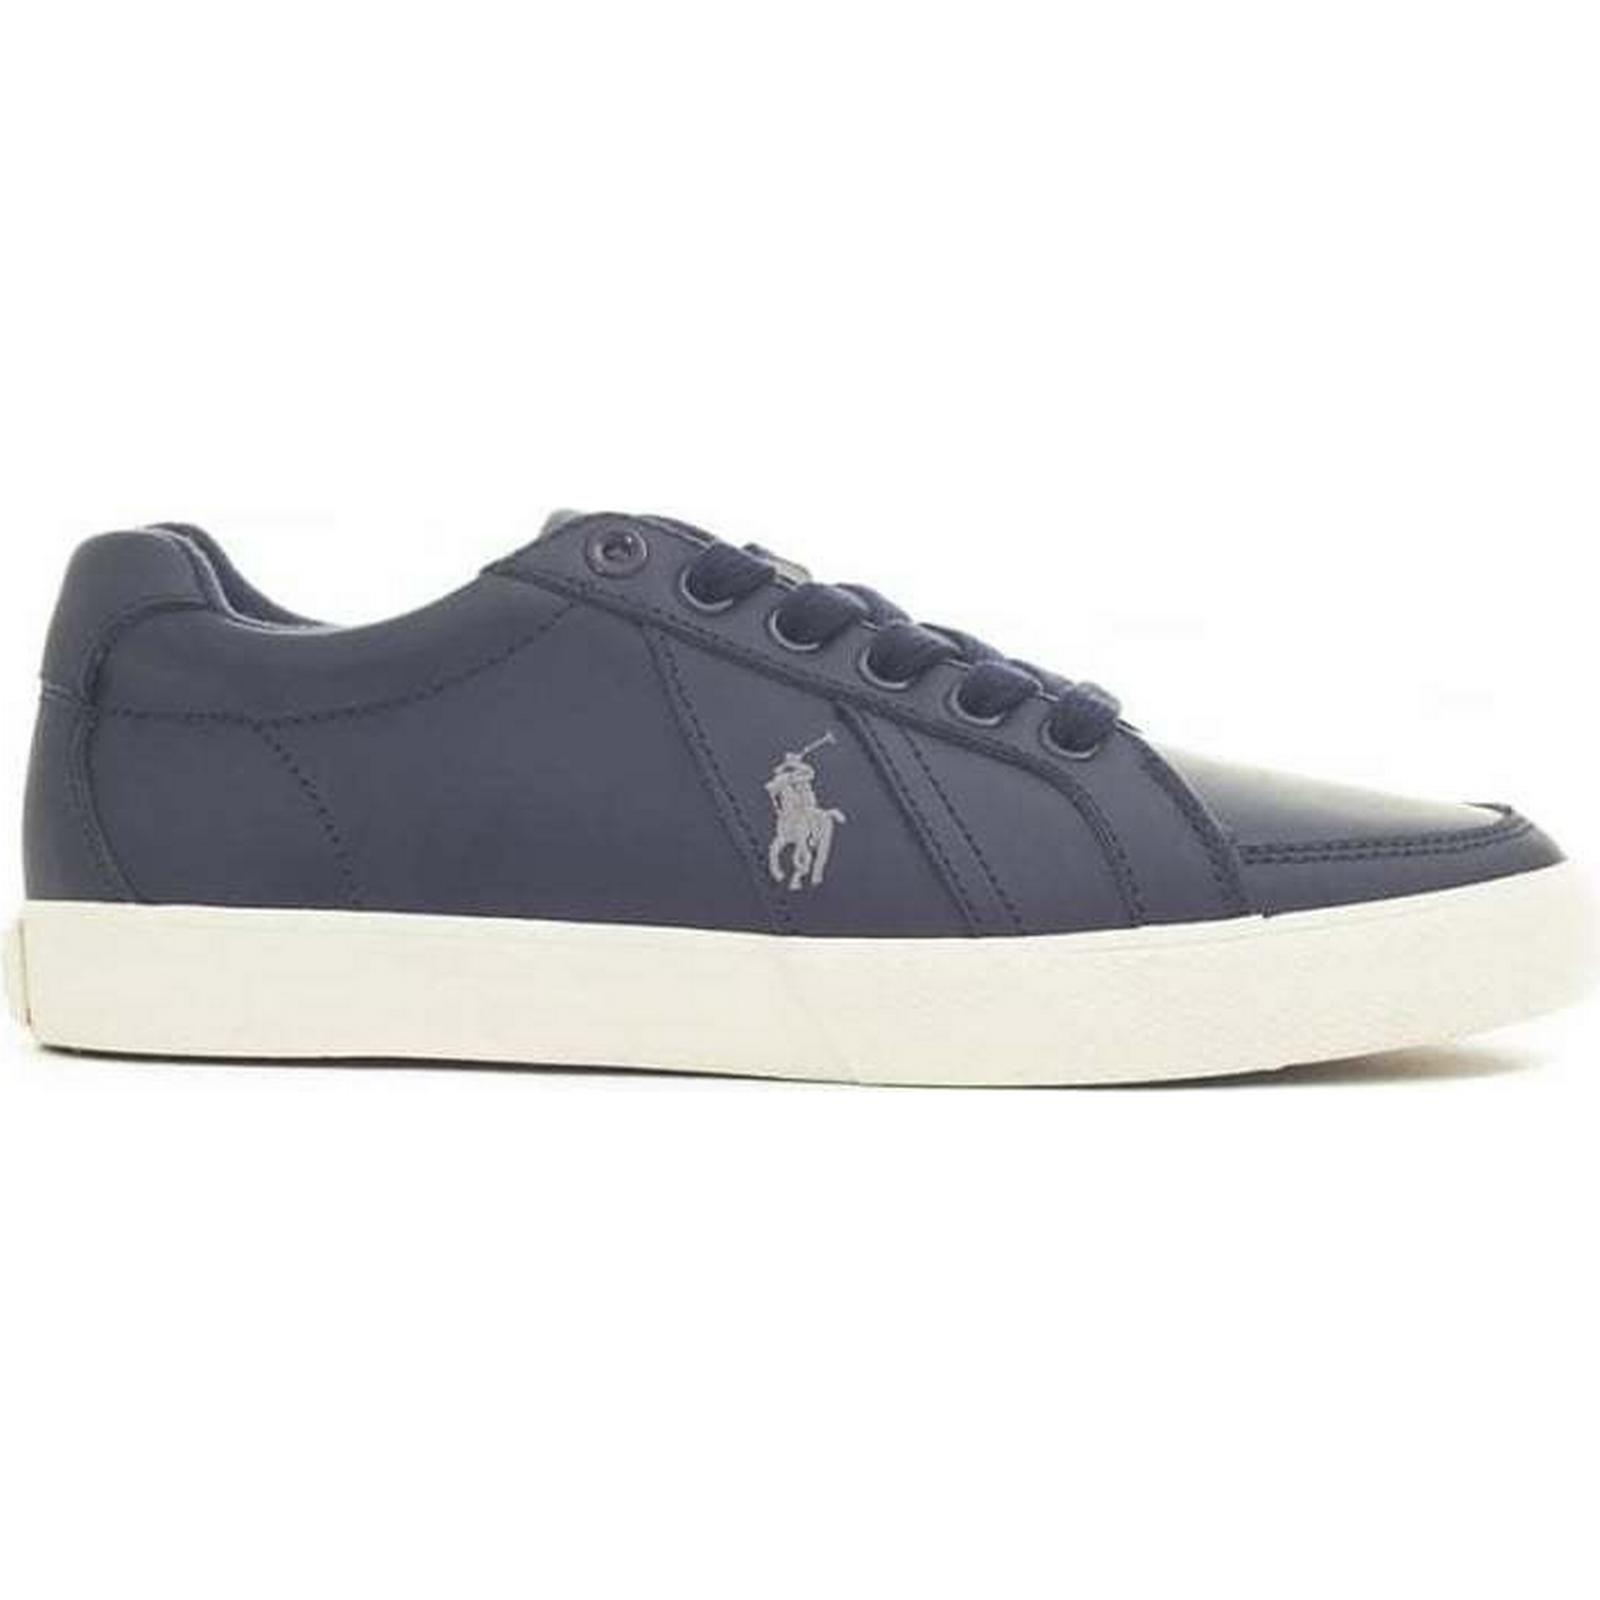 Polo Trainers Ralph Lauren Hugh Leather Trainers Polo Colour: BLACK, Size: 6 ac6ee8